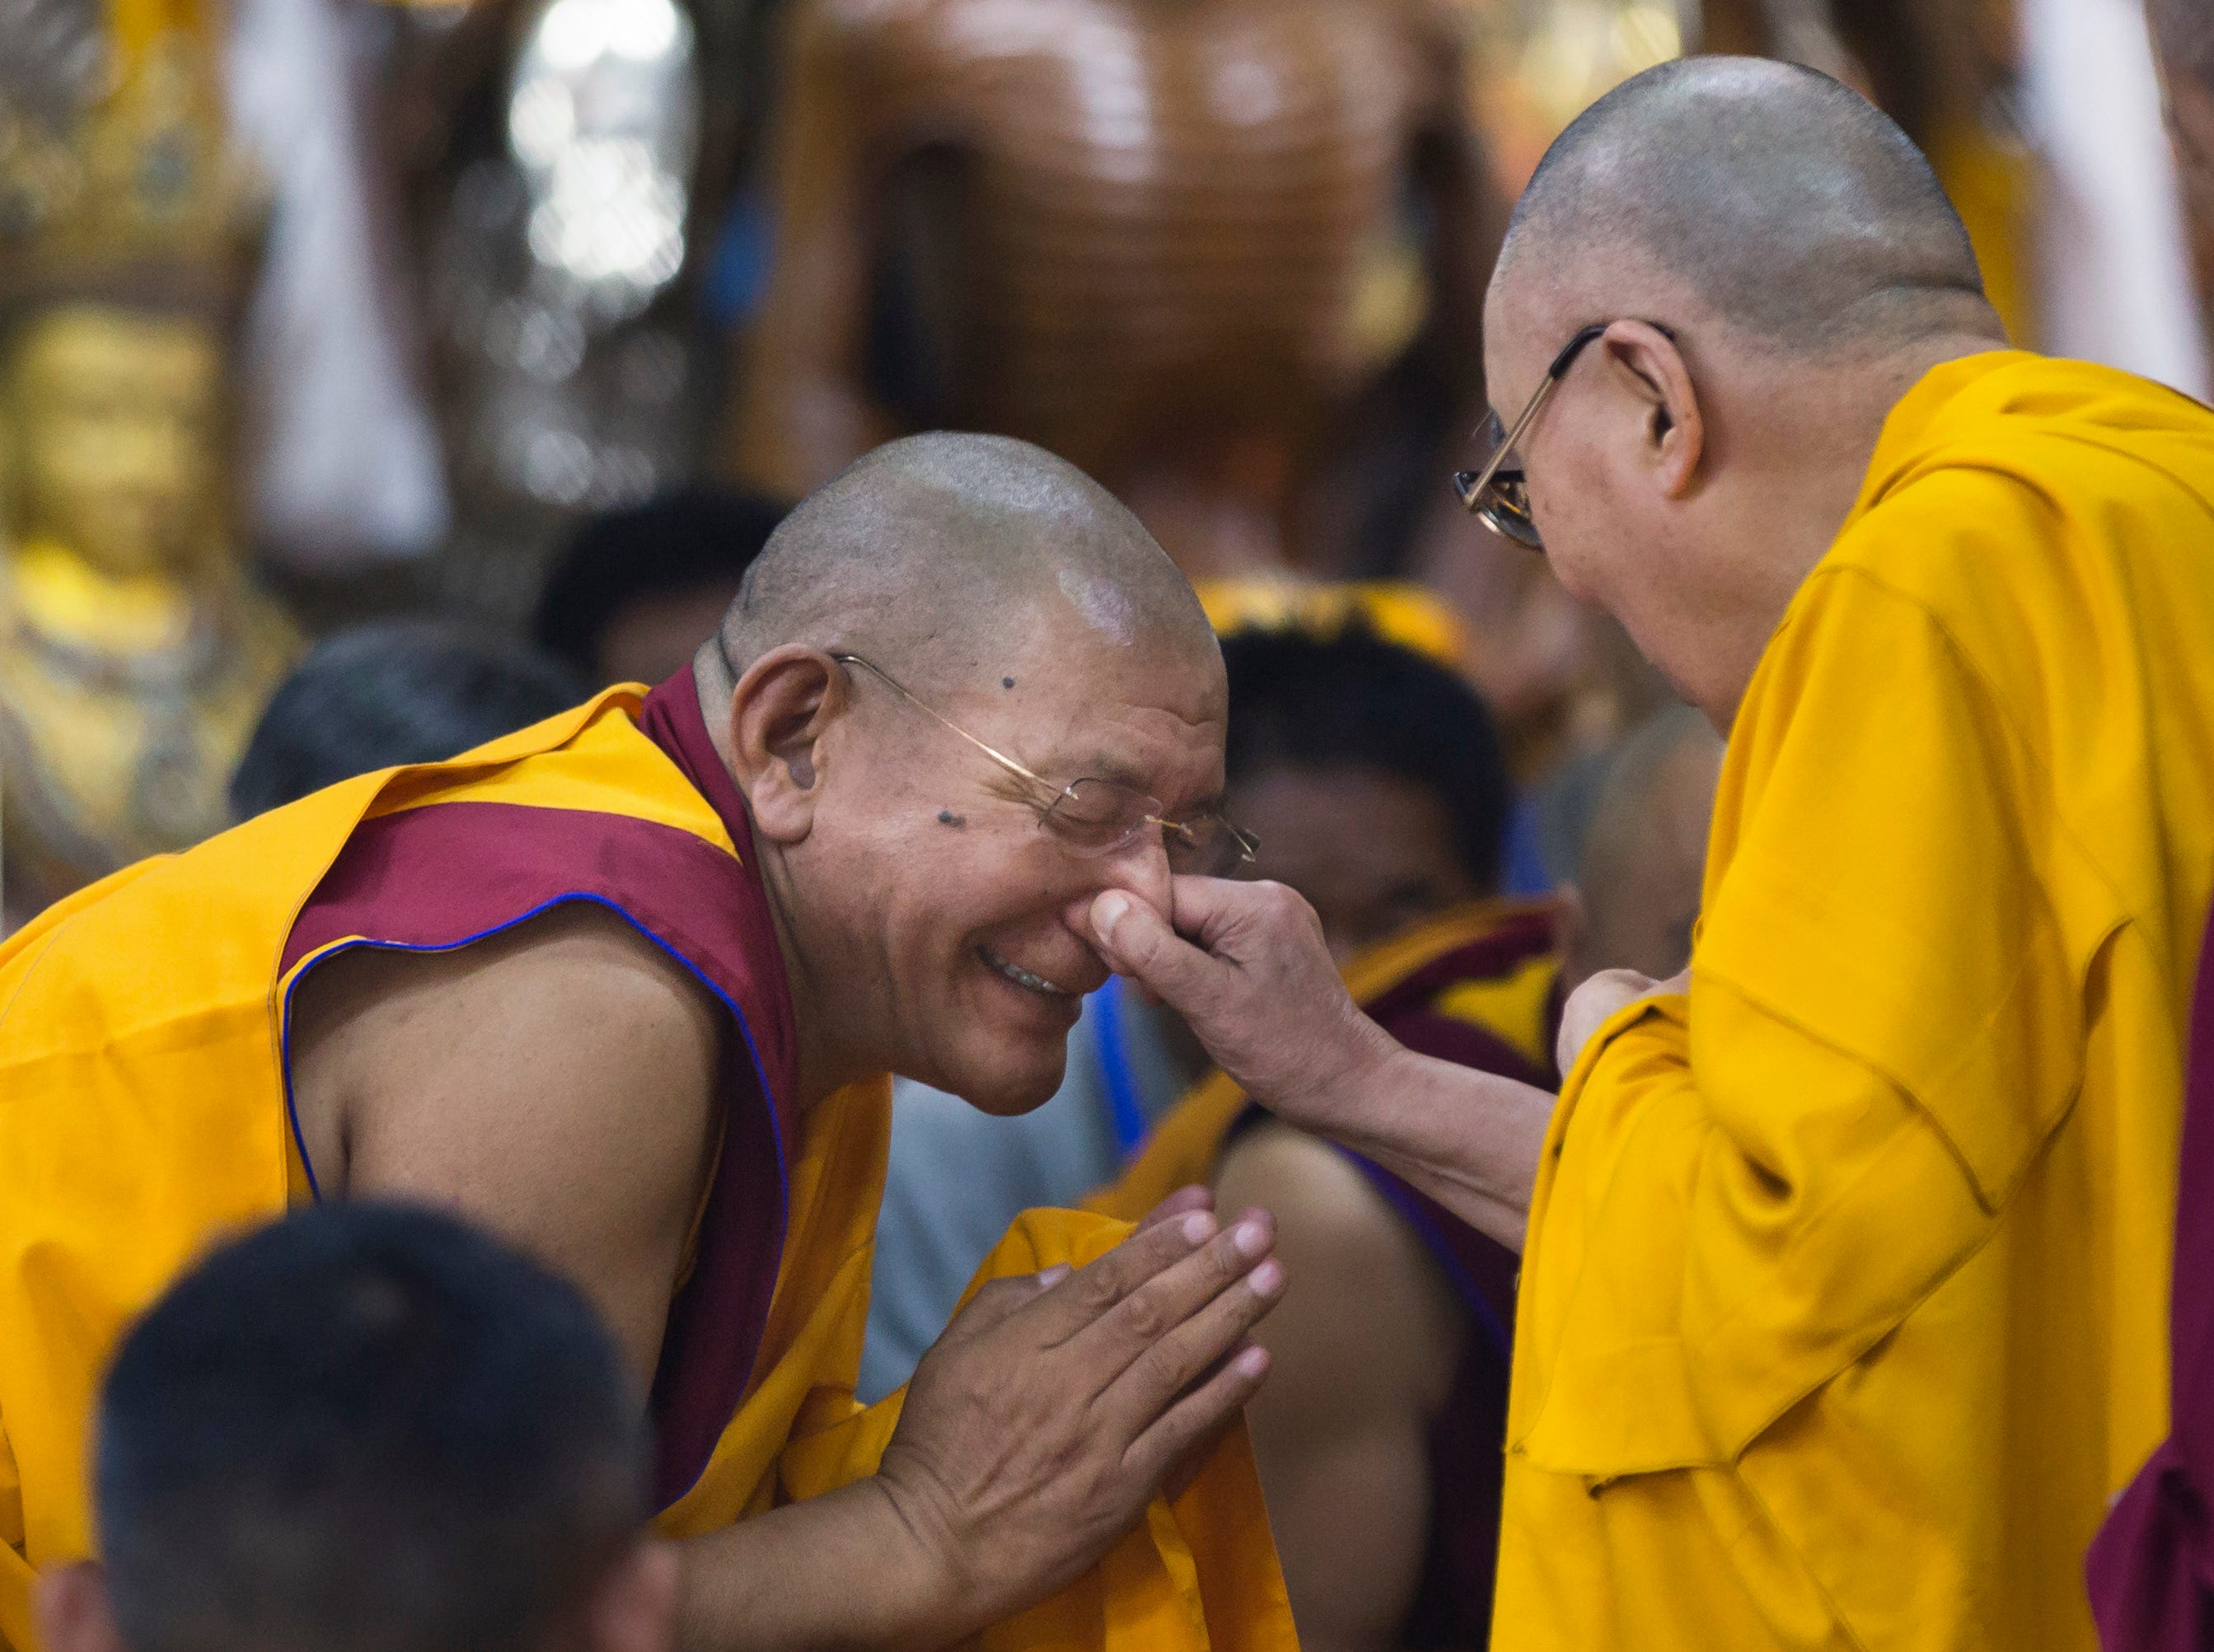 June 7, 2018: Tibetan spiritual leader the Dalai Lama playfully pinches the nose of a senior monk as he arrives to give a talk to Tibetan youth in Dharmsala, India. Every year the Tibetan leader speaks to young Tibetans to introduce them to Buddhist precepts.